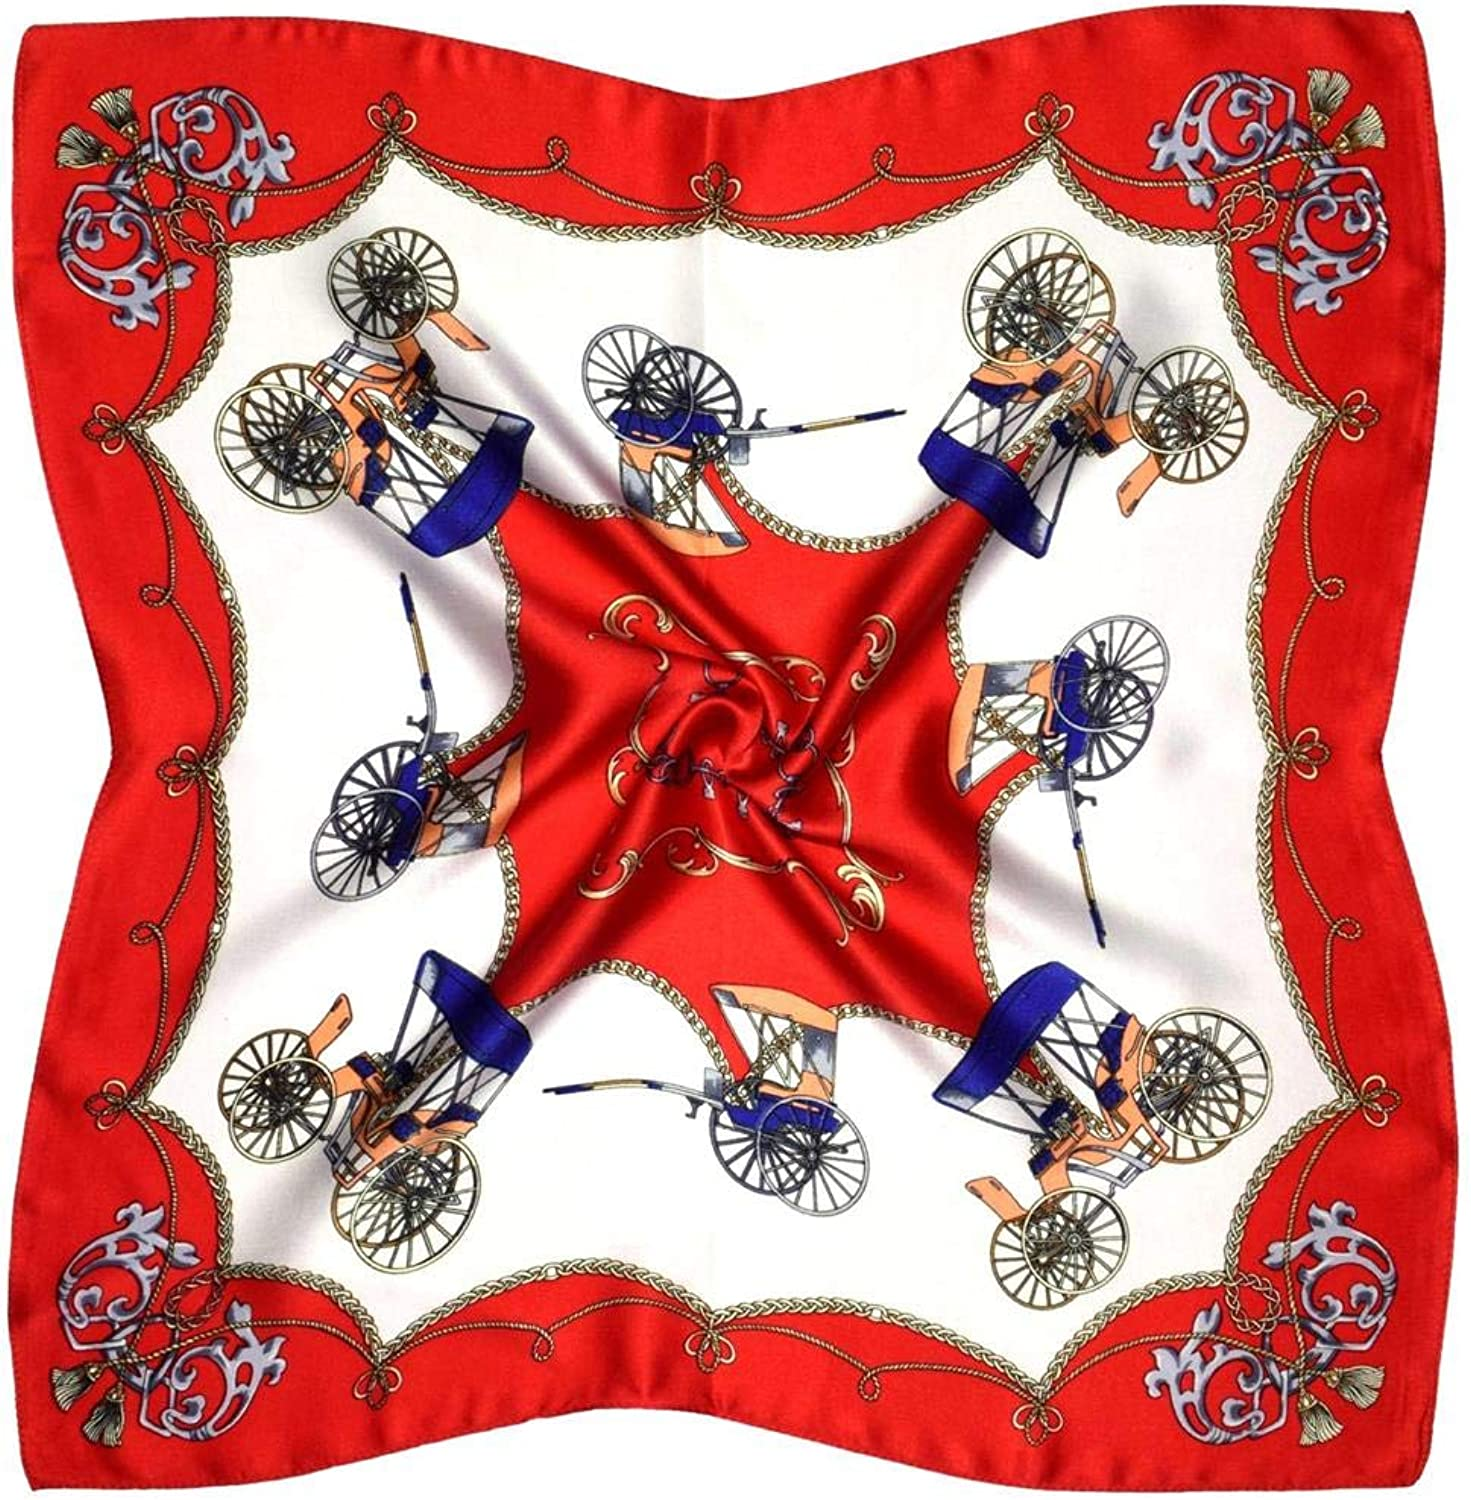 White Red Carriage Print Small Thick Silk Square Scarf